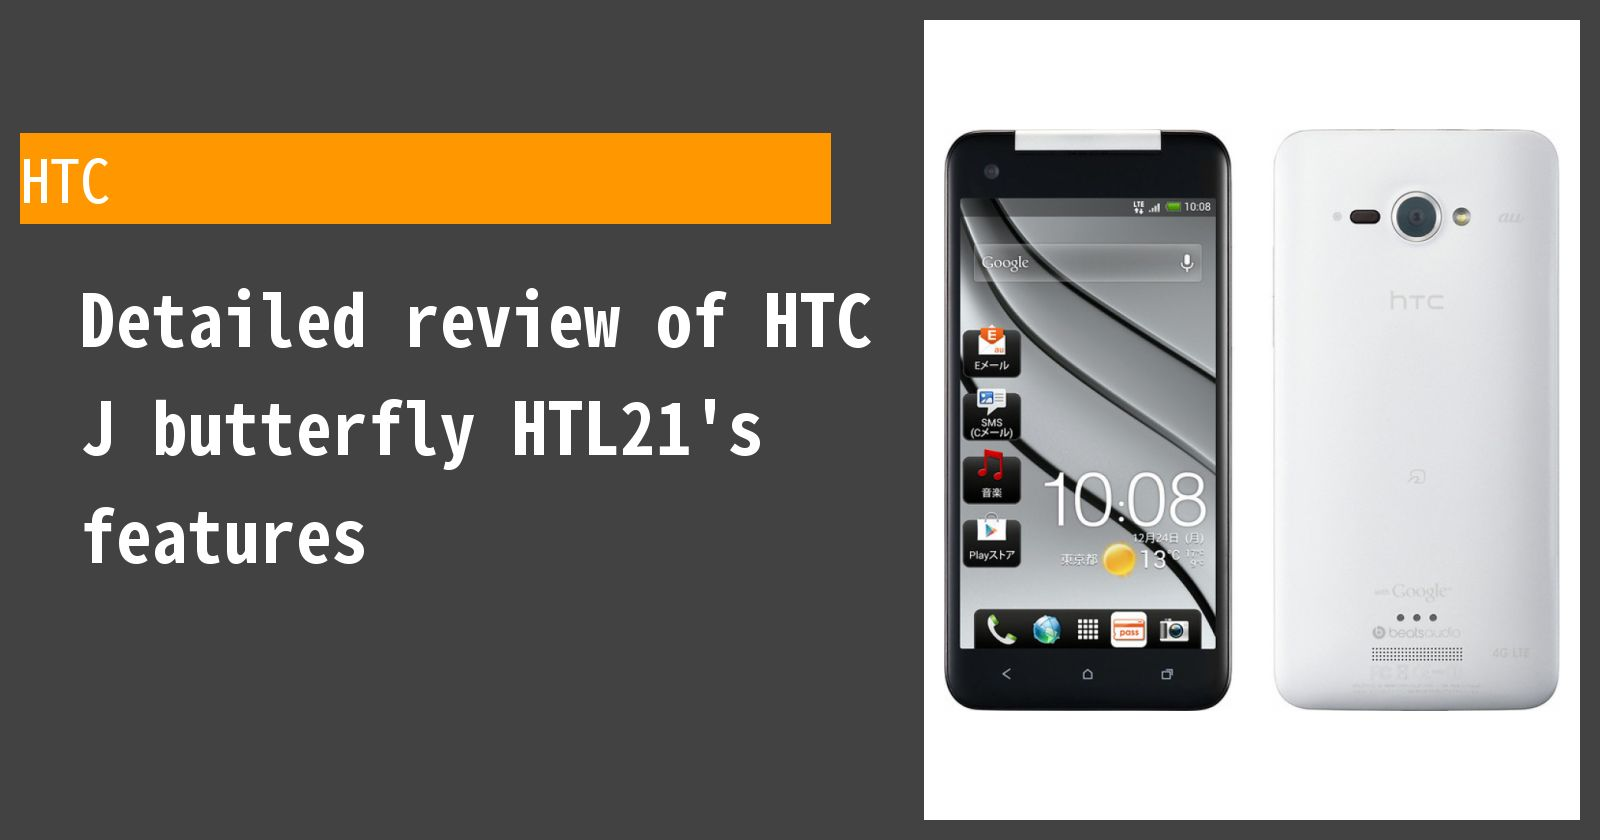 Detailed review of HTC J butterfly HTL21 au's features